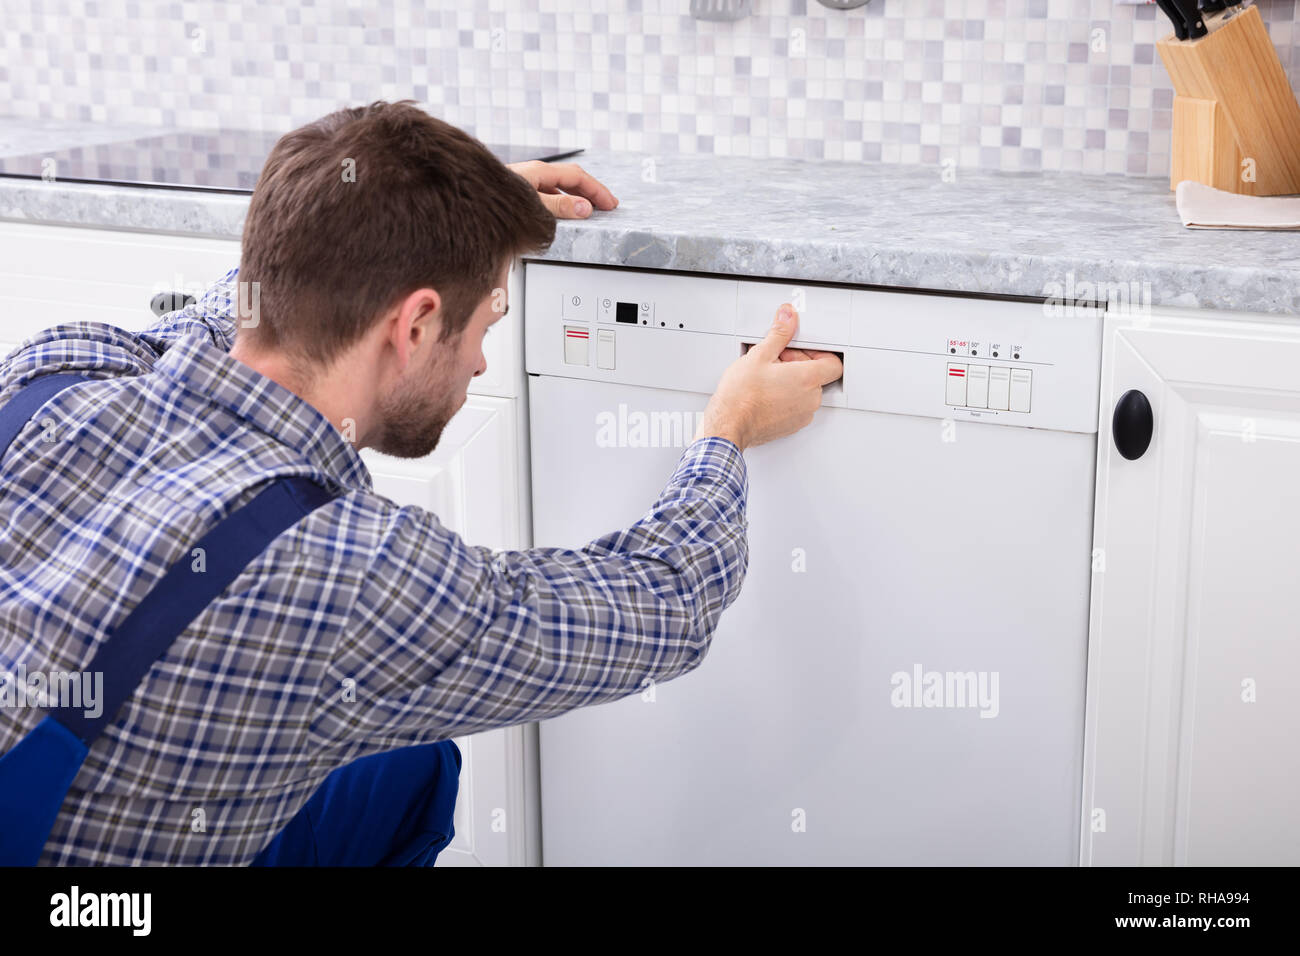 Young Serviceman Pressing Button Of Dishwasher In Kitchen - Stock Image